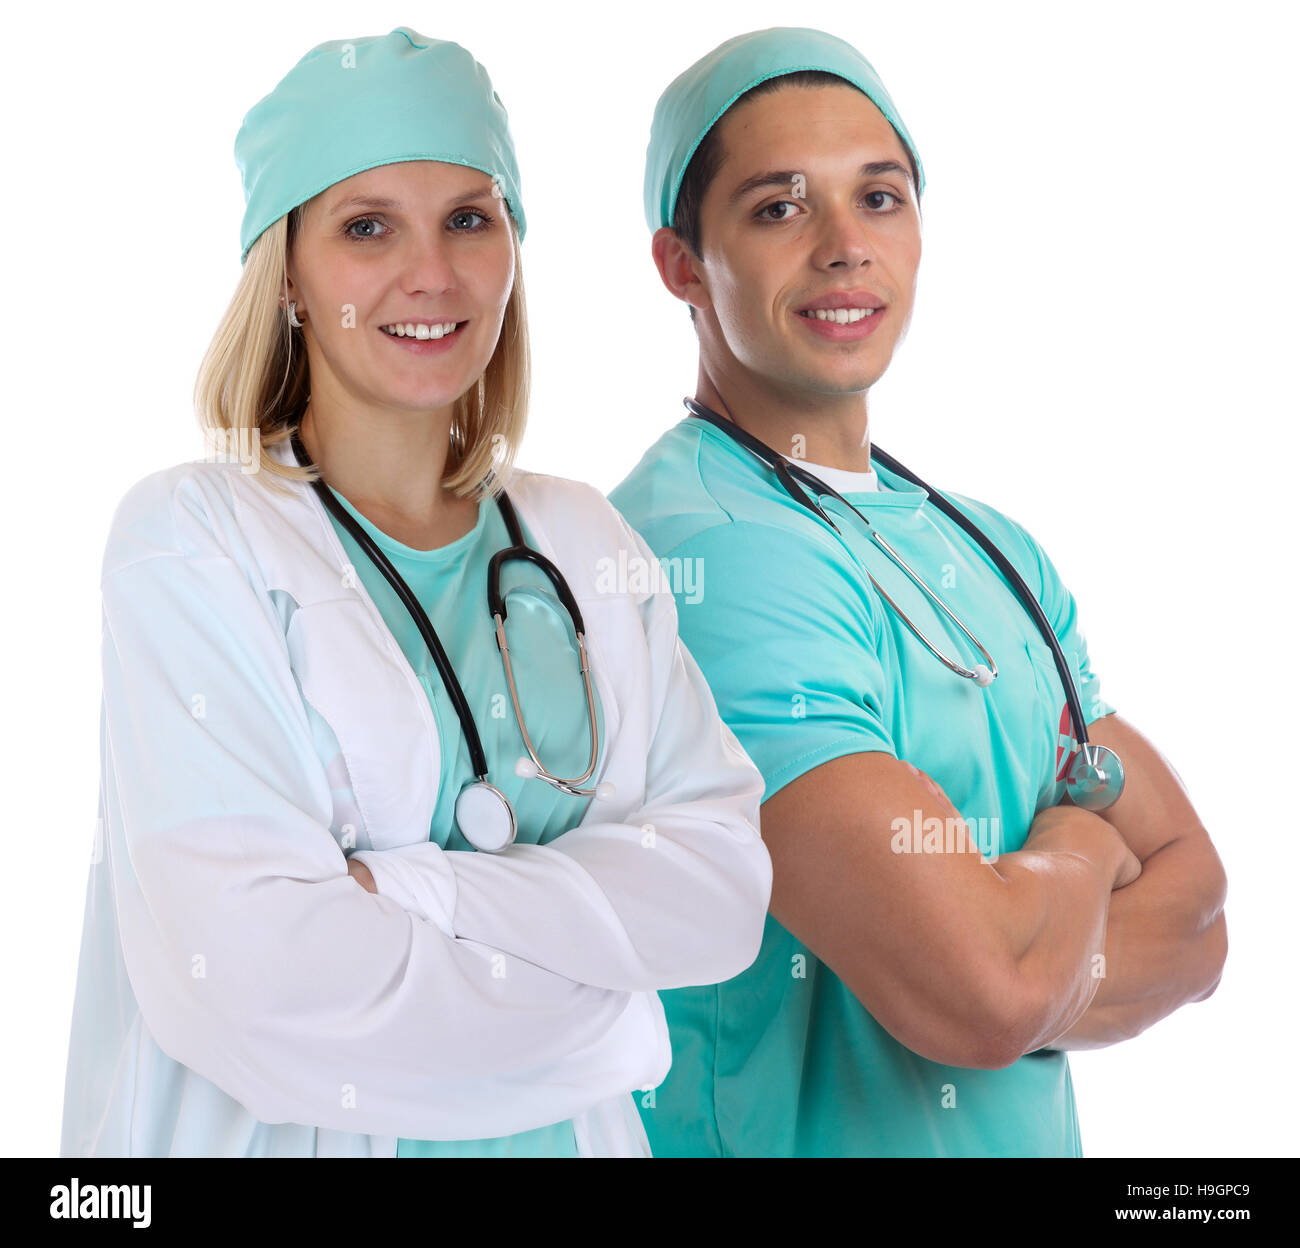 Doctor team young doctors occupation job isolated on a white background - Stock Image